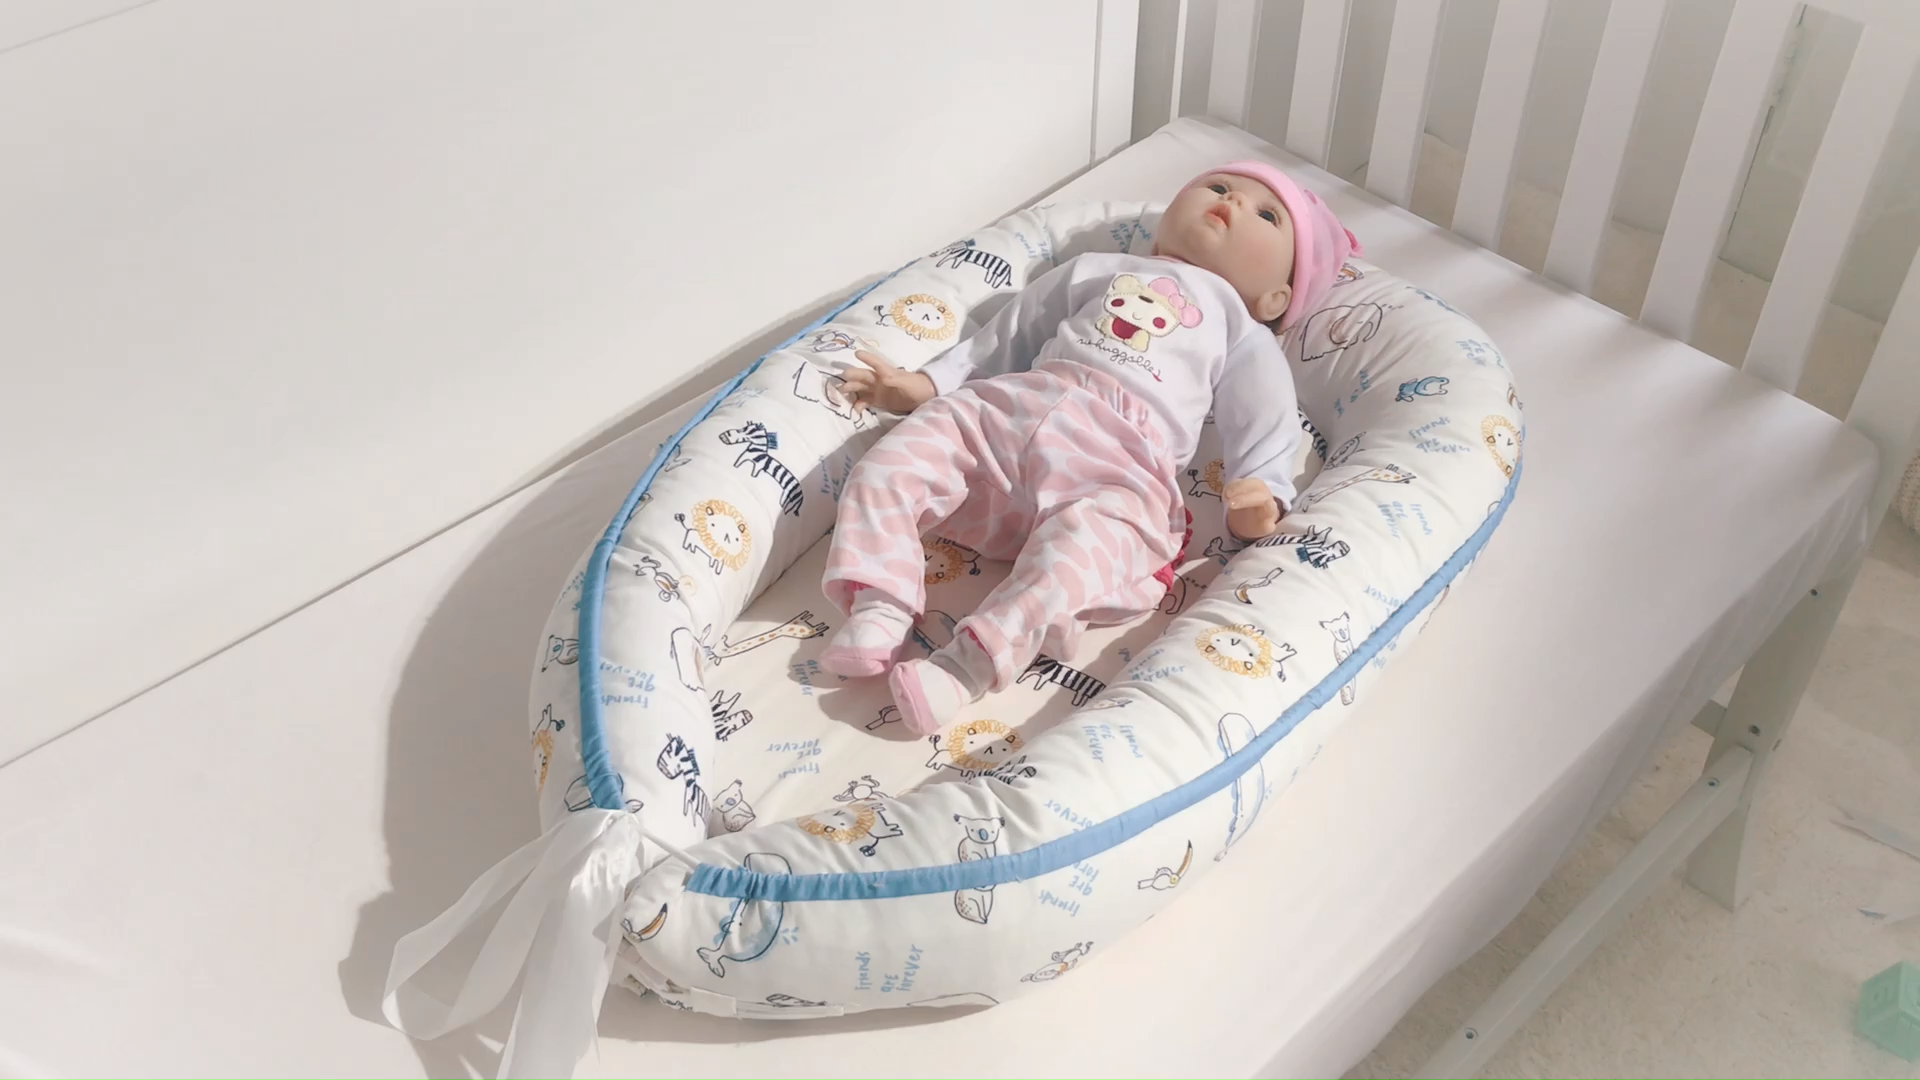 Baby Sleeping Nest Bed100% Soft Cotton Newborn Lounger Portable Crib Suitable Baby nest